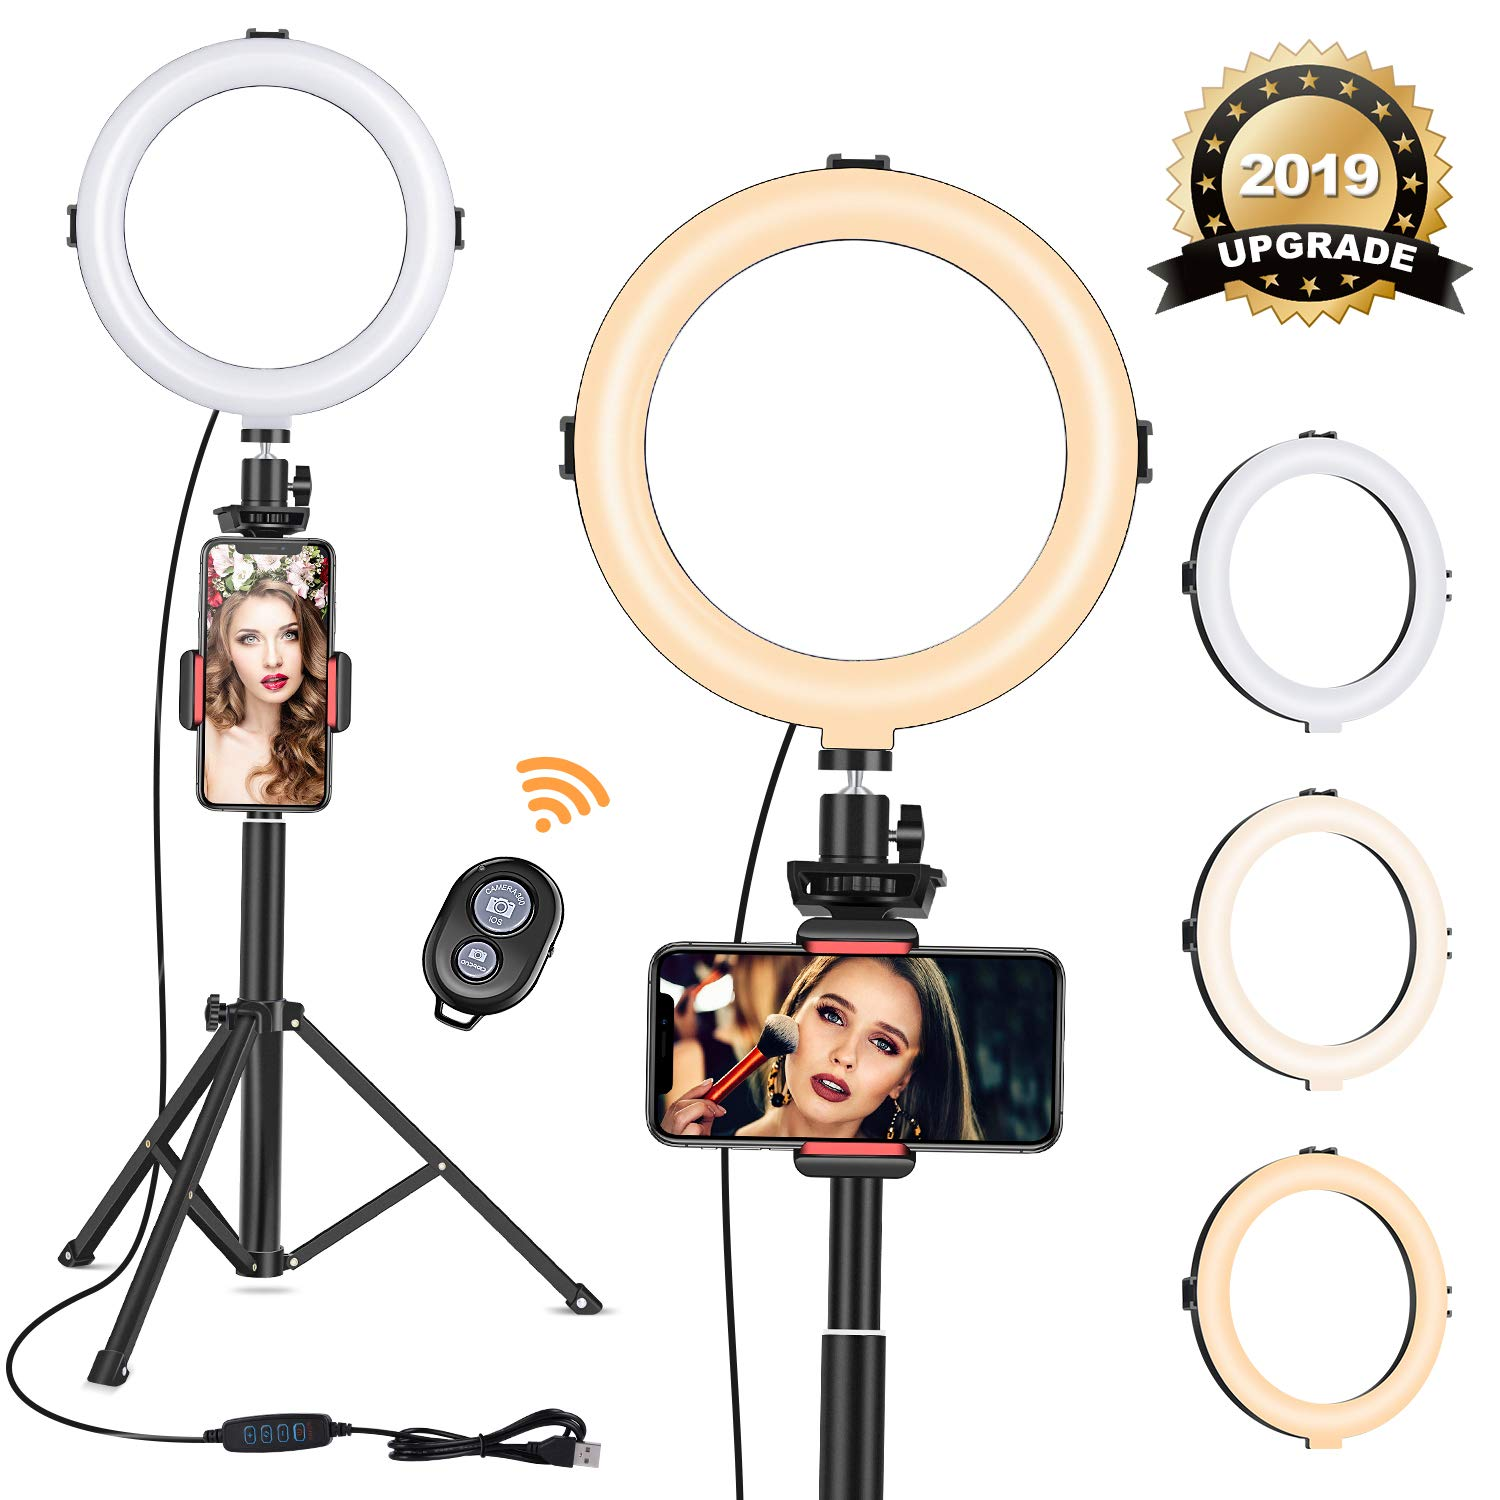 8'' Ring Light with Tripod Stand - Dimmable Selfie Ring Light LED Camera Ringlight with Tripod and Phone Holder for Live Stream/Makeup/YouTube Video, Compatible for iPhone Android, Remote(Upgraded) by VIEWOW